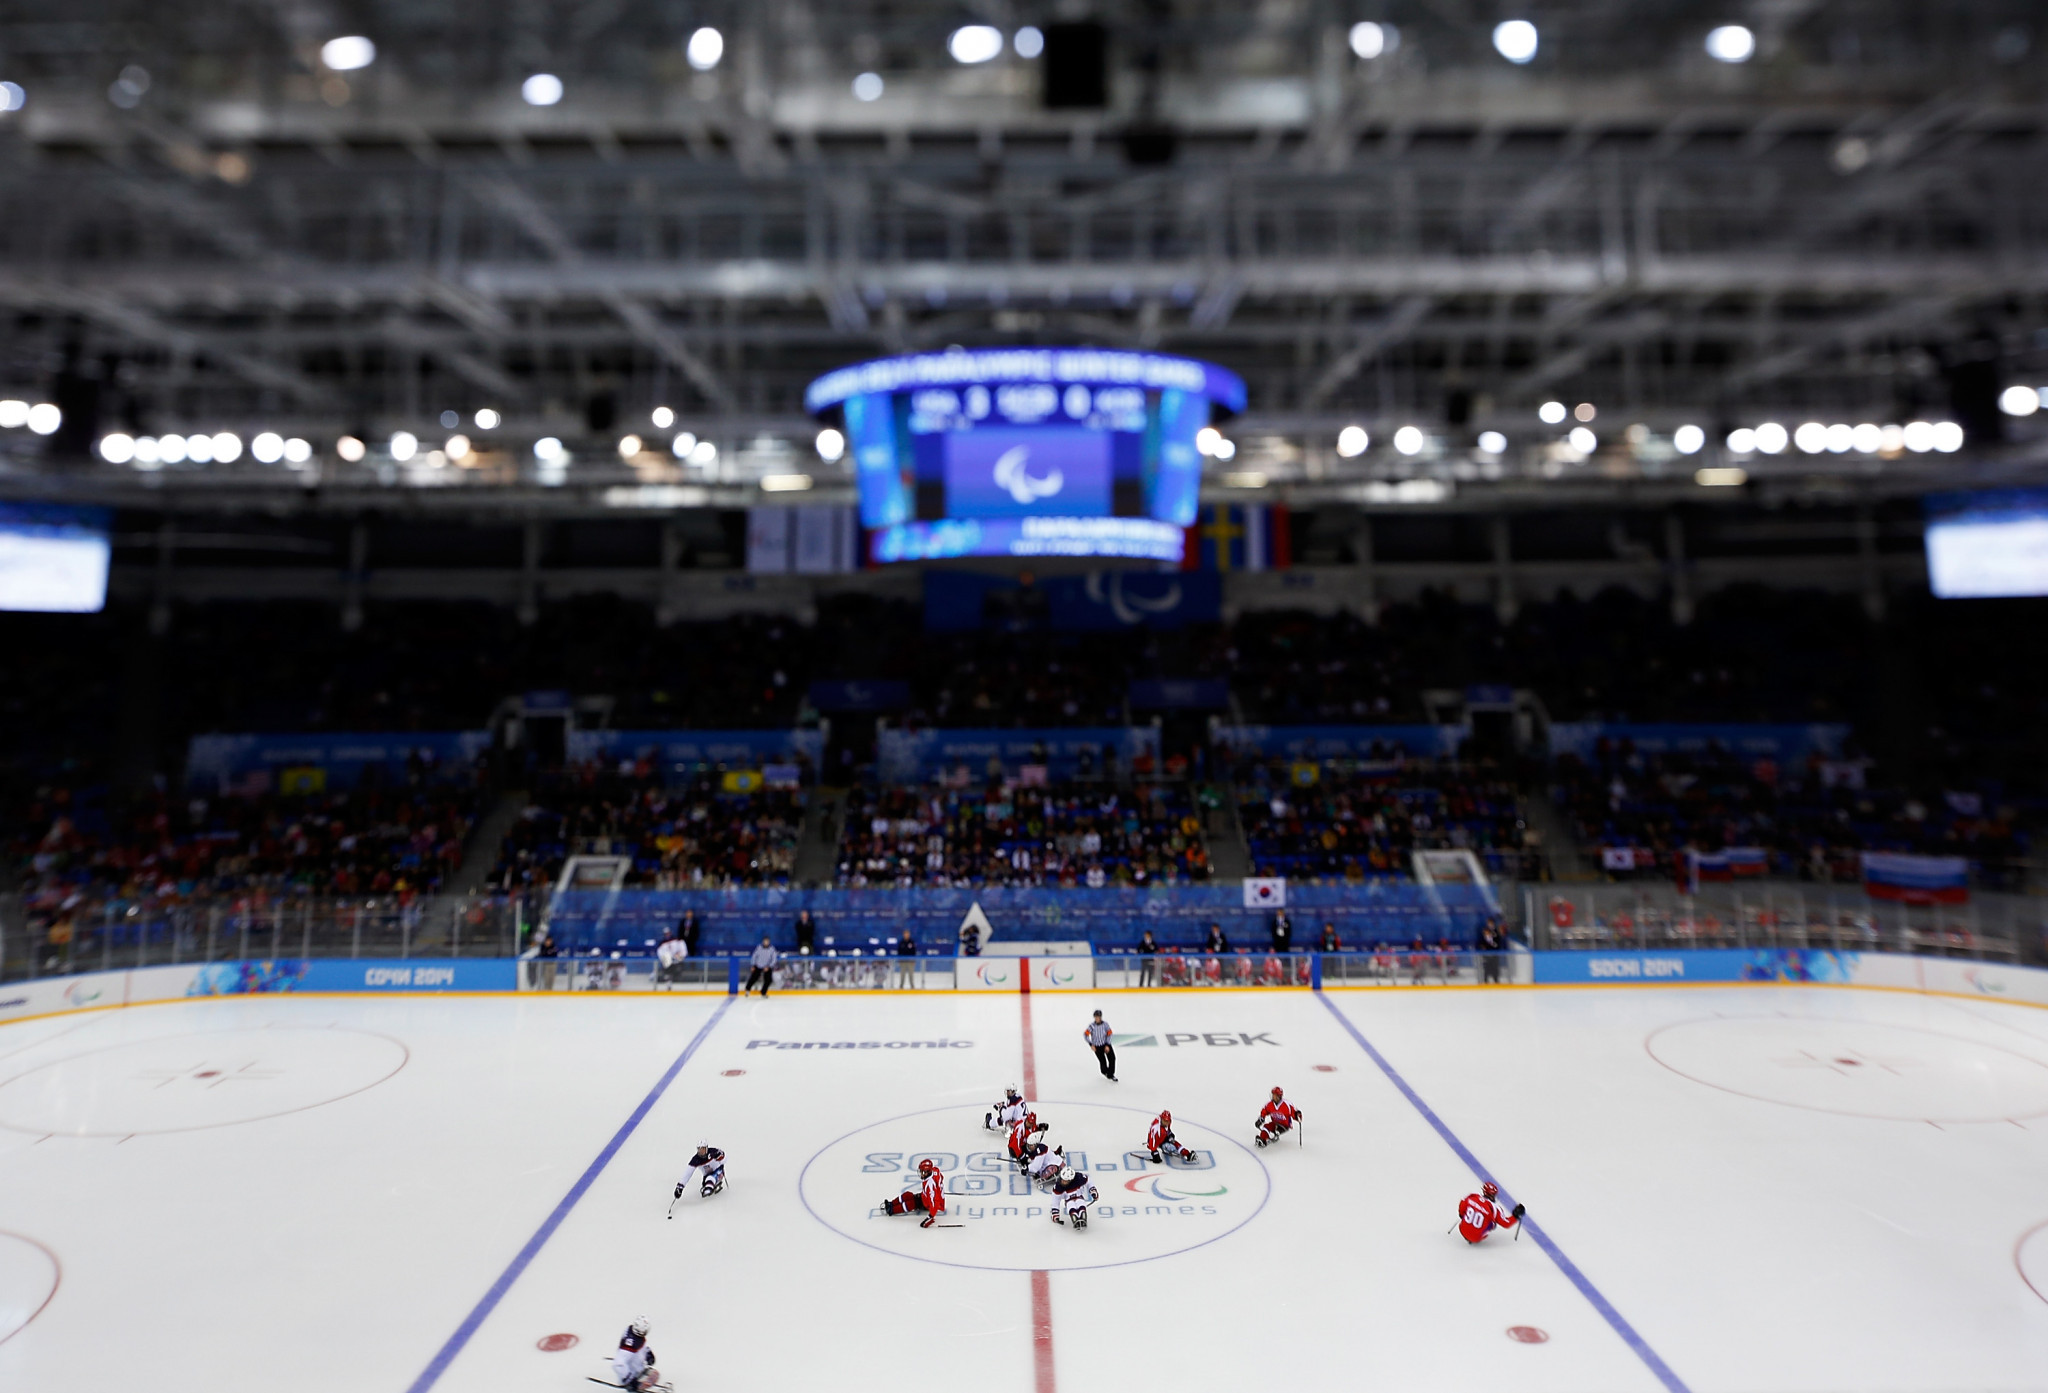 World Para Ice Hockey opens Women's World Challenge bidding process